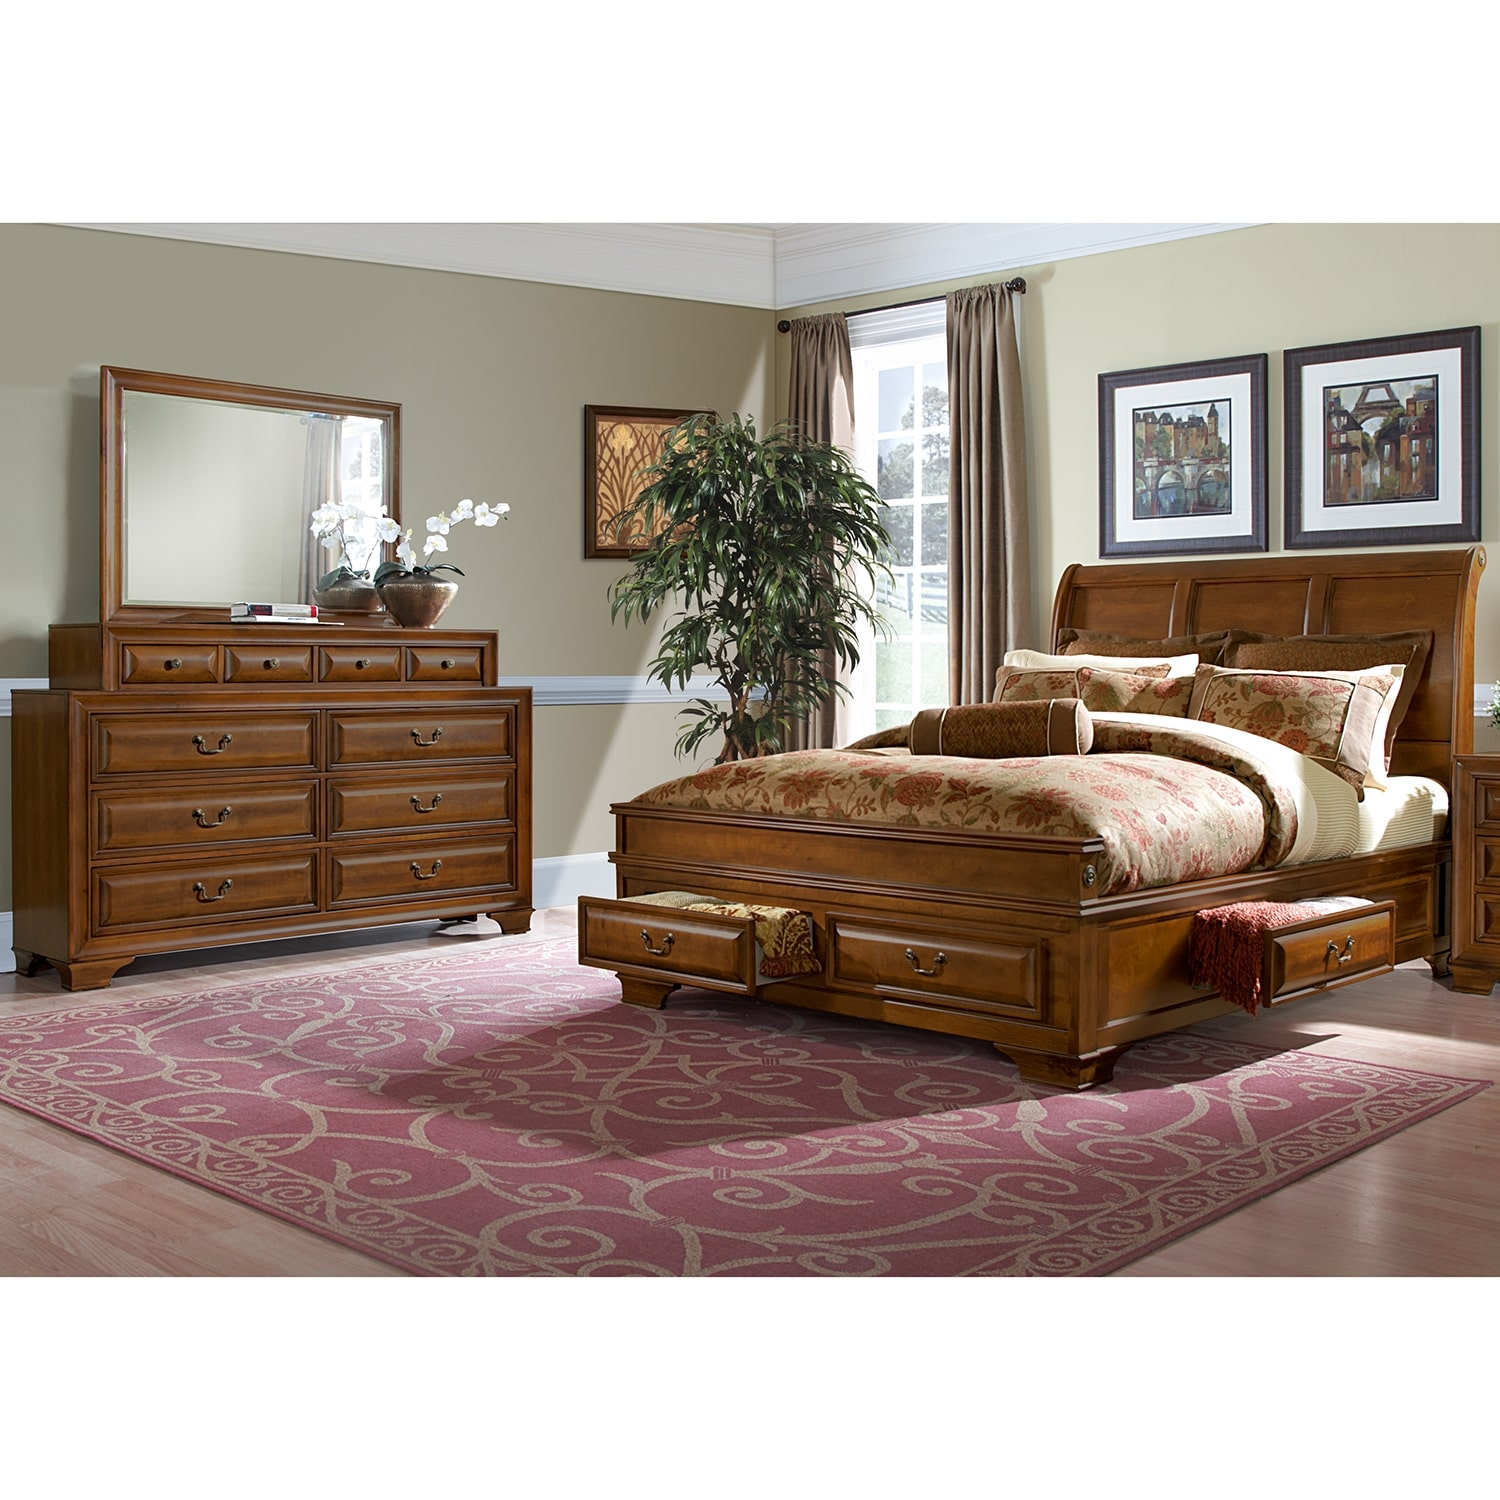 When Are Furniture Sales: Sanibelle 5-Piece King Storage Bedroom Set - Pine